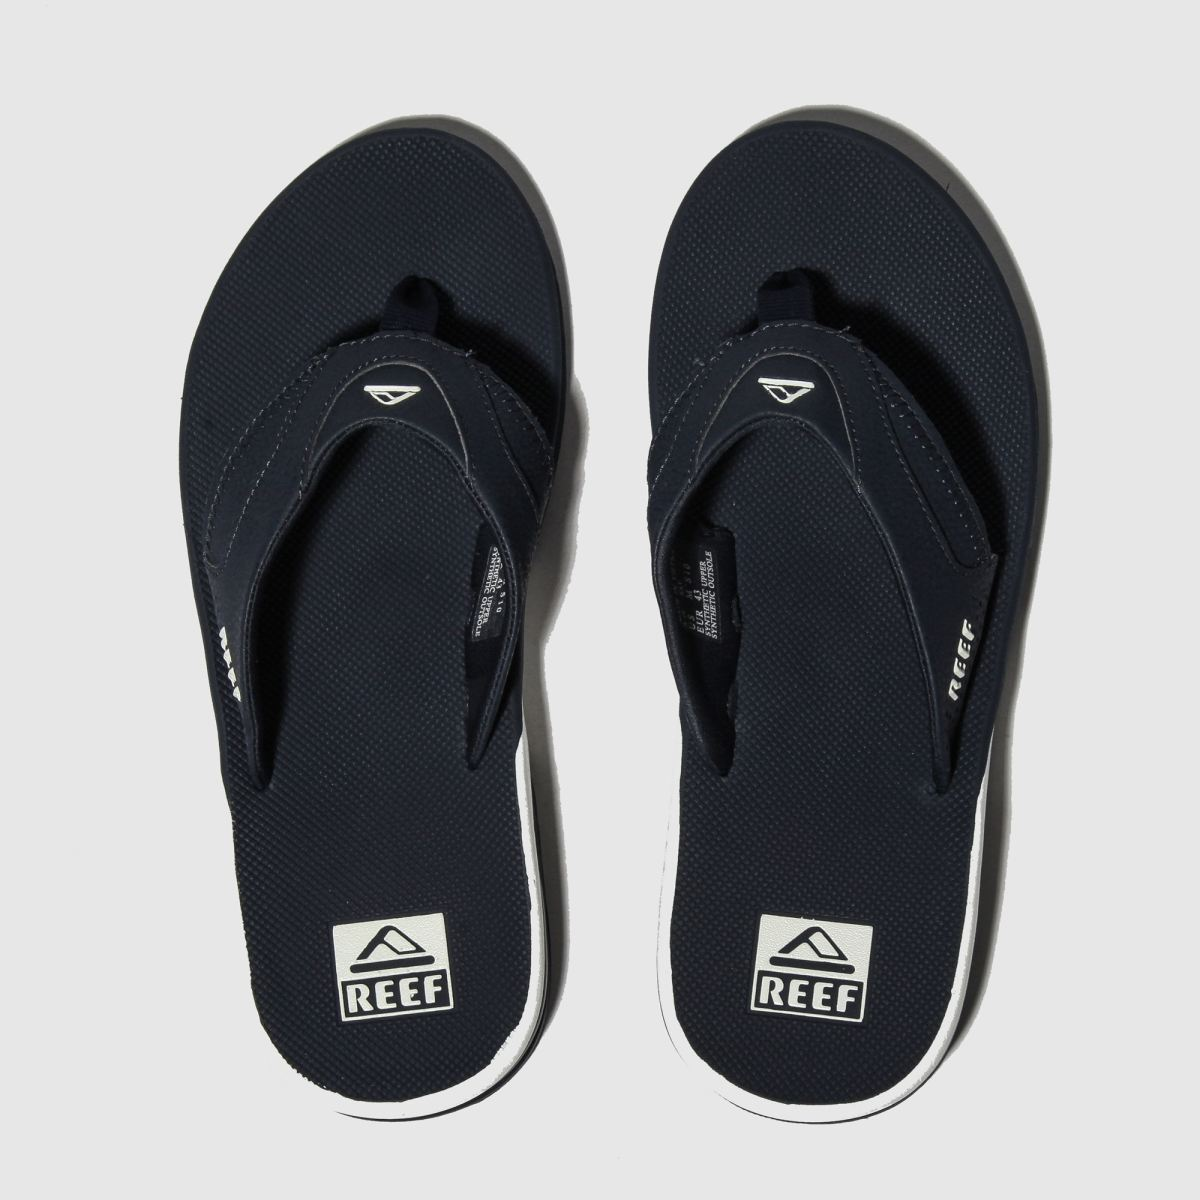 Reef Navy & White Fanning Sandals